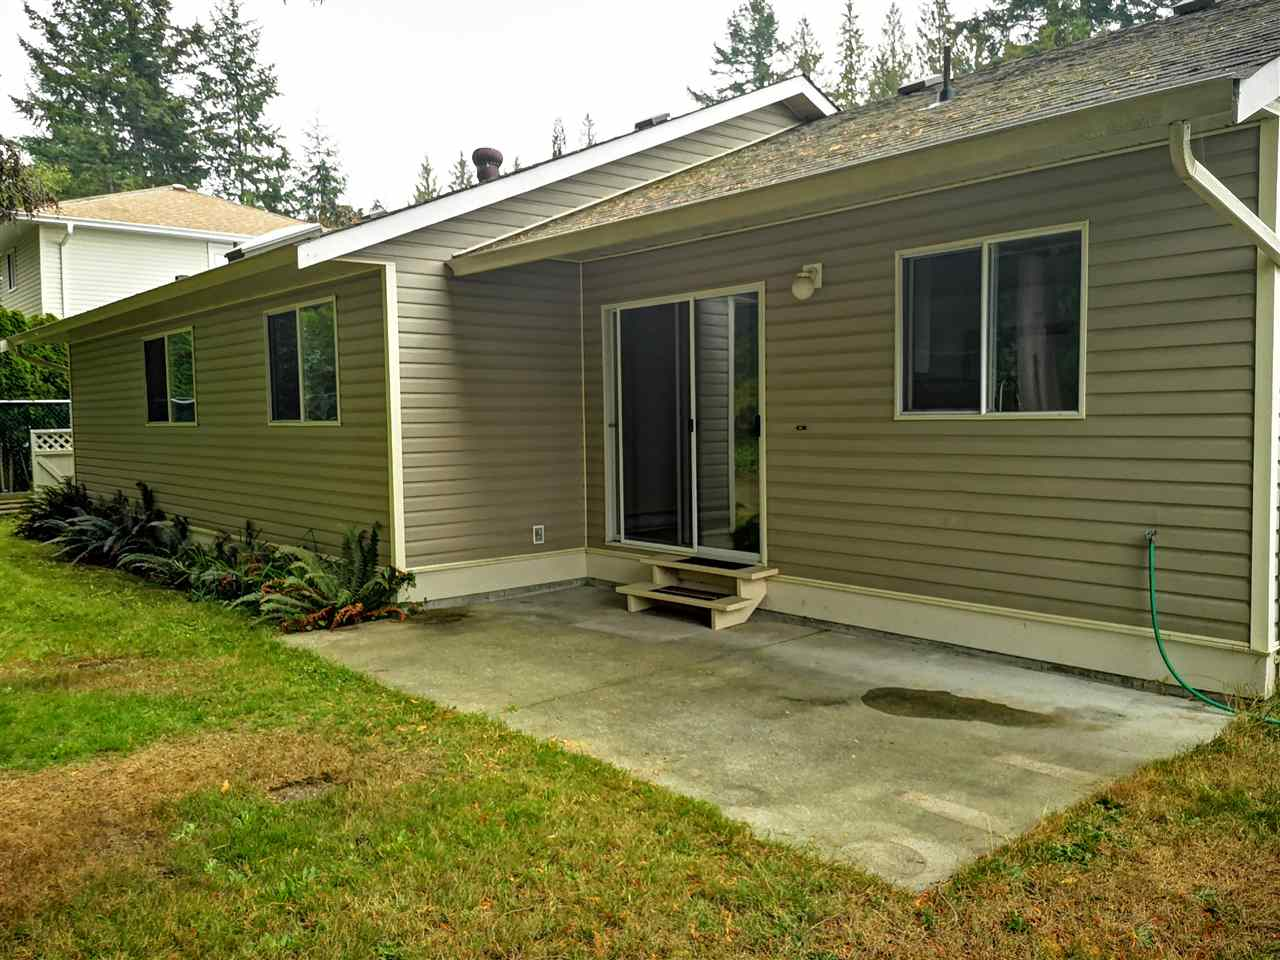 1448 BONNIEBROOK HEIGHTS ROAD - Gibsons & Area House/Single Family for sale, 3 Bedrooms (R2482137) - #8